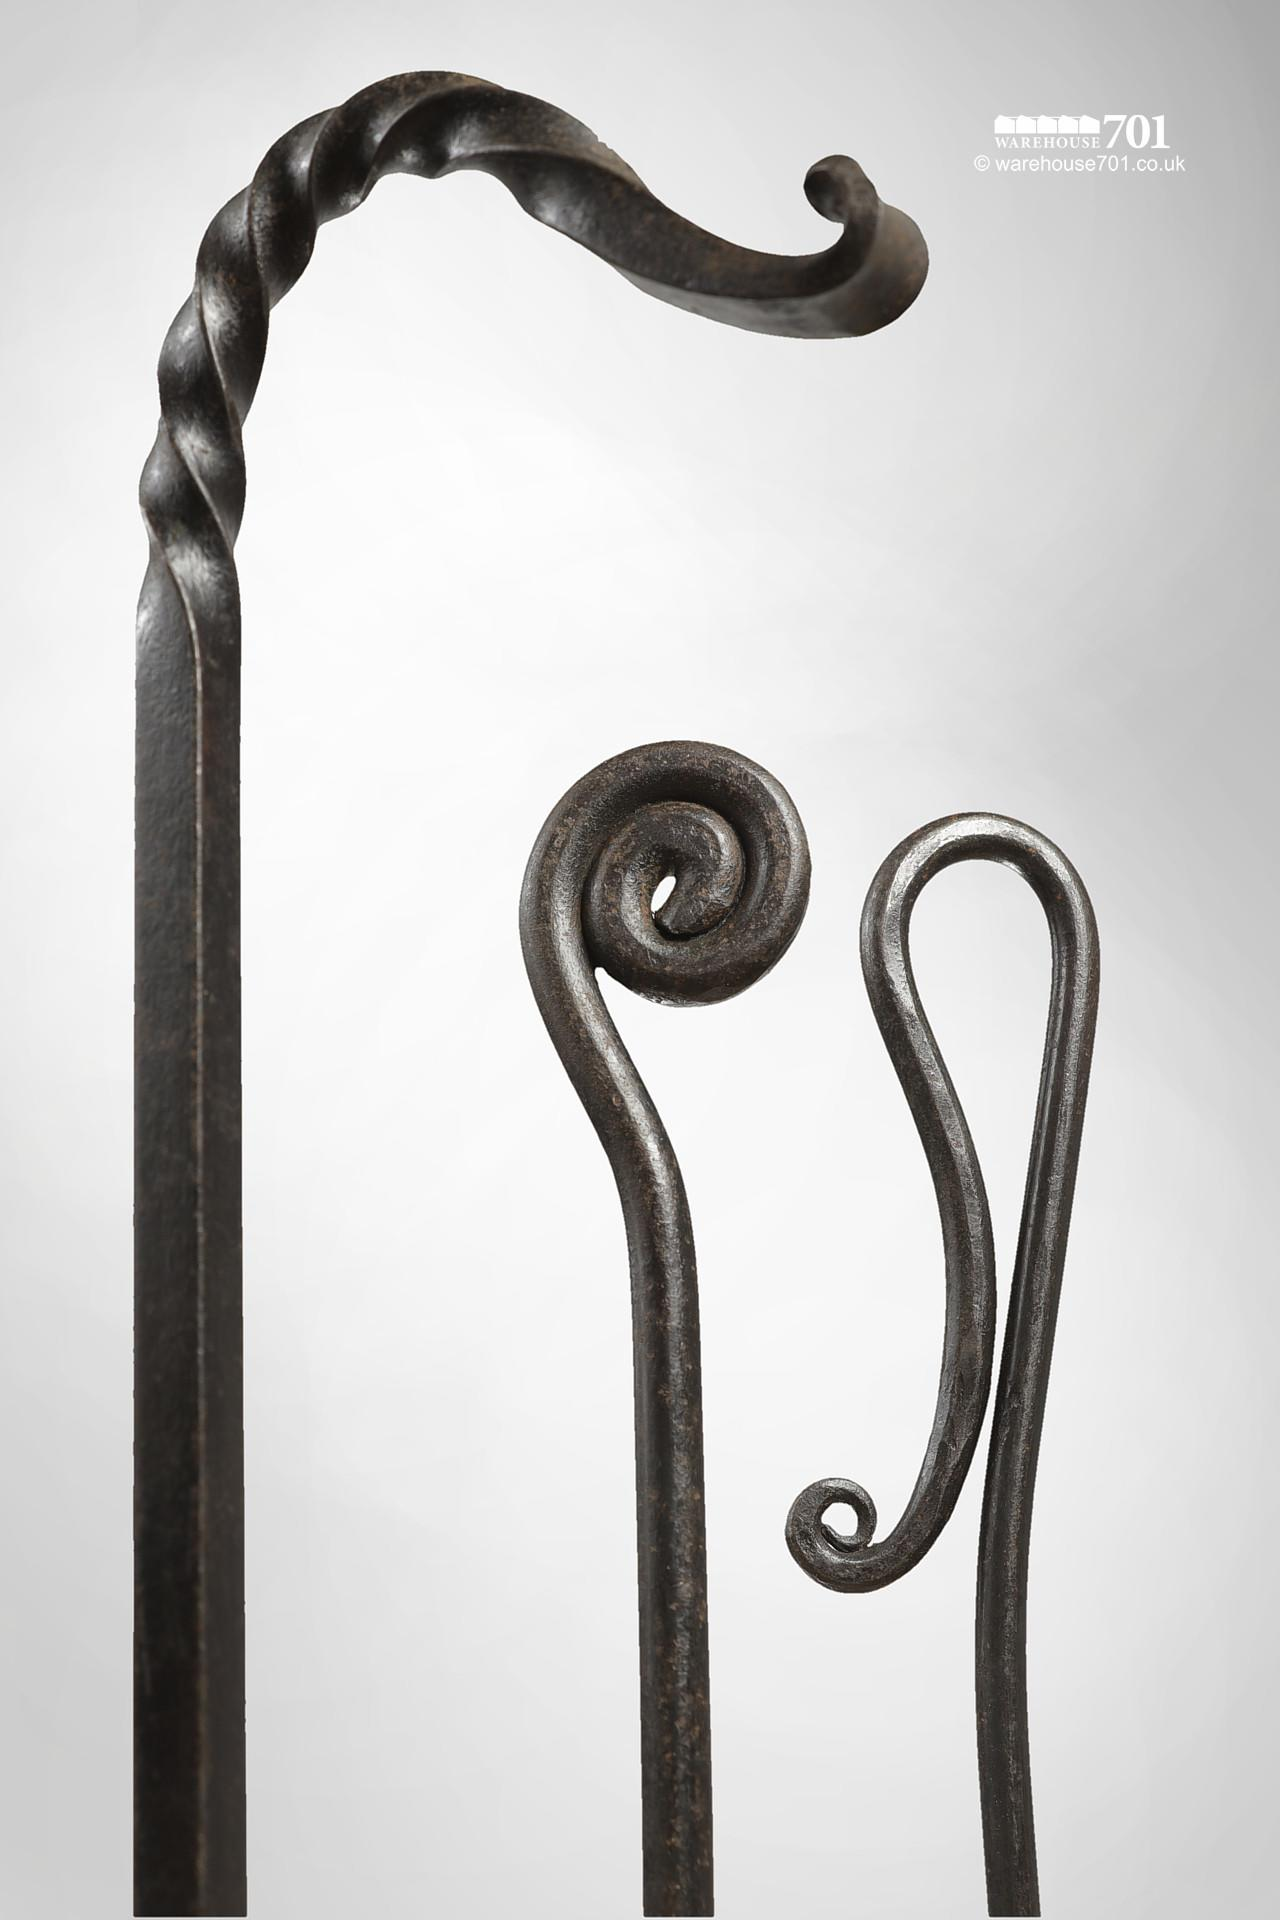 New Wrought Iron Blacksmith Made Decorative Fire Pokers #3